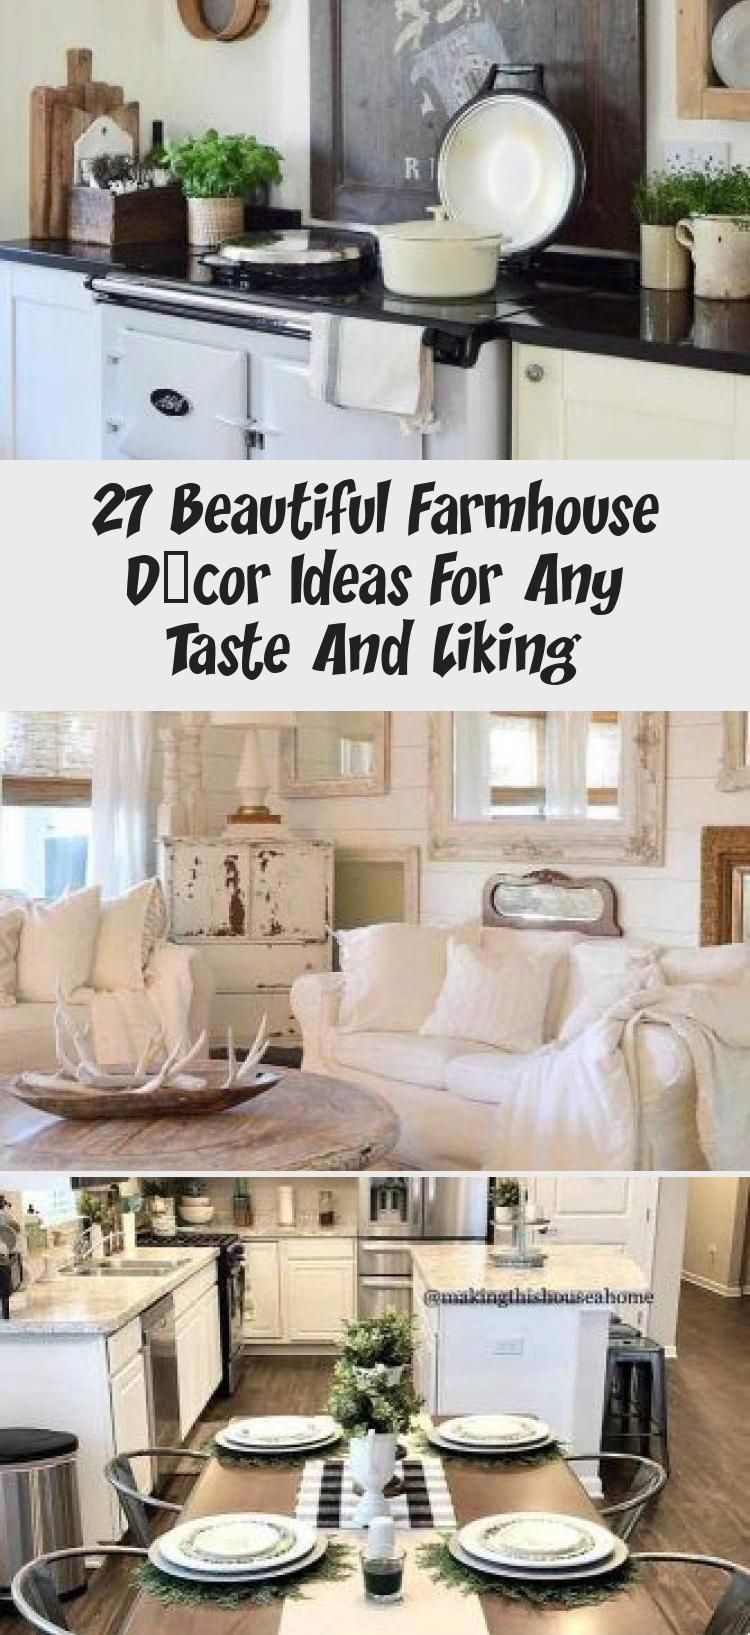 27 Beautiful Farmhouse Décor Ideas For Any Taste And Liking - Decor -  I like t... -  27 Beautiful Farmhouse Décor Ideas For Any Taste And Liking – Decor –  I like the pantry sign  - #Beautiful #bohoEclecticDecor #californiaEclecticDecor #decor #EclecticDecorapartment #EclecticDecorchic #EclecticDecorcontemporary #EclecticDecorcozy #EclecticDecordiy #EclecticDecorfarmhouse #EclecticDecorfrench #EclecticDecorindustrial #EclecticDecorkitchen #EclecticDecorwhimsical #farmhouse #Ideas #Liking #sout